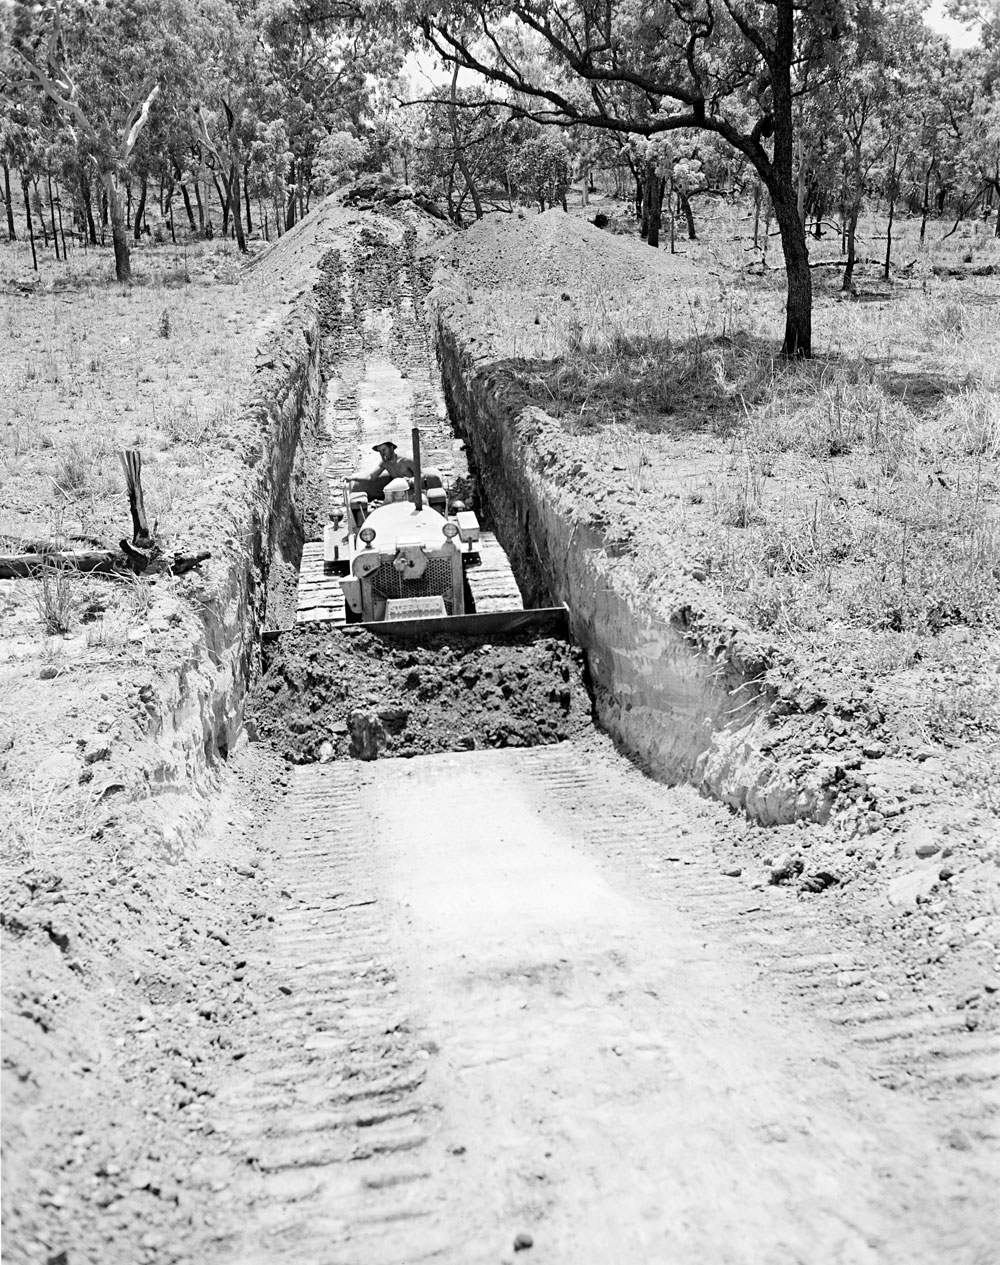 Bulldozer costeaning at Rum Jungle (1959). National Archives of Australia: A1200, L30438